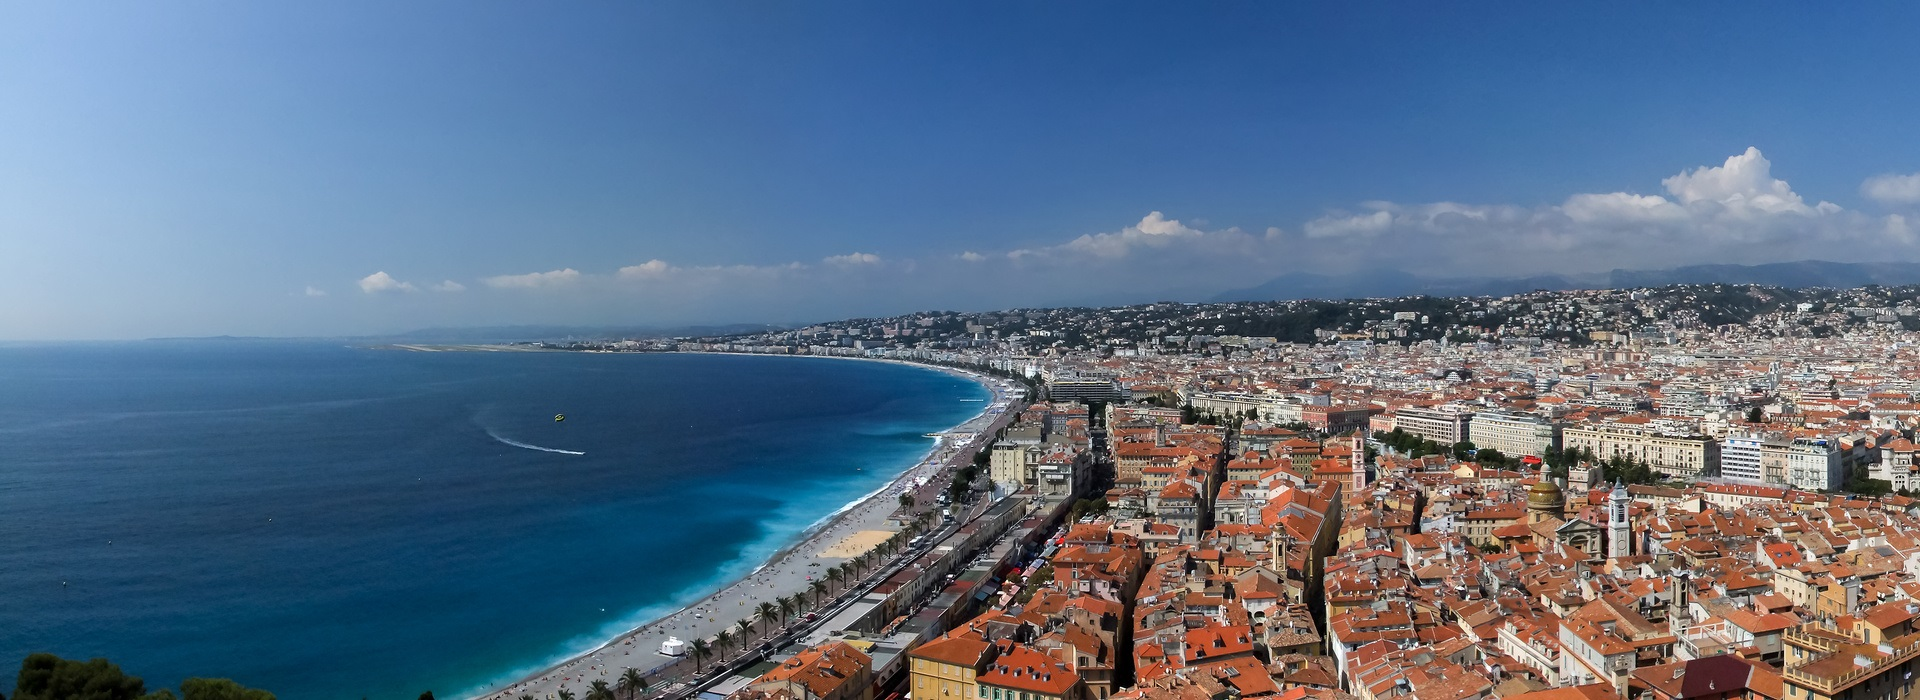 BPS Business Property Services French Riviera Nice